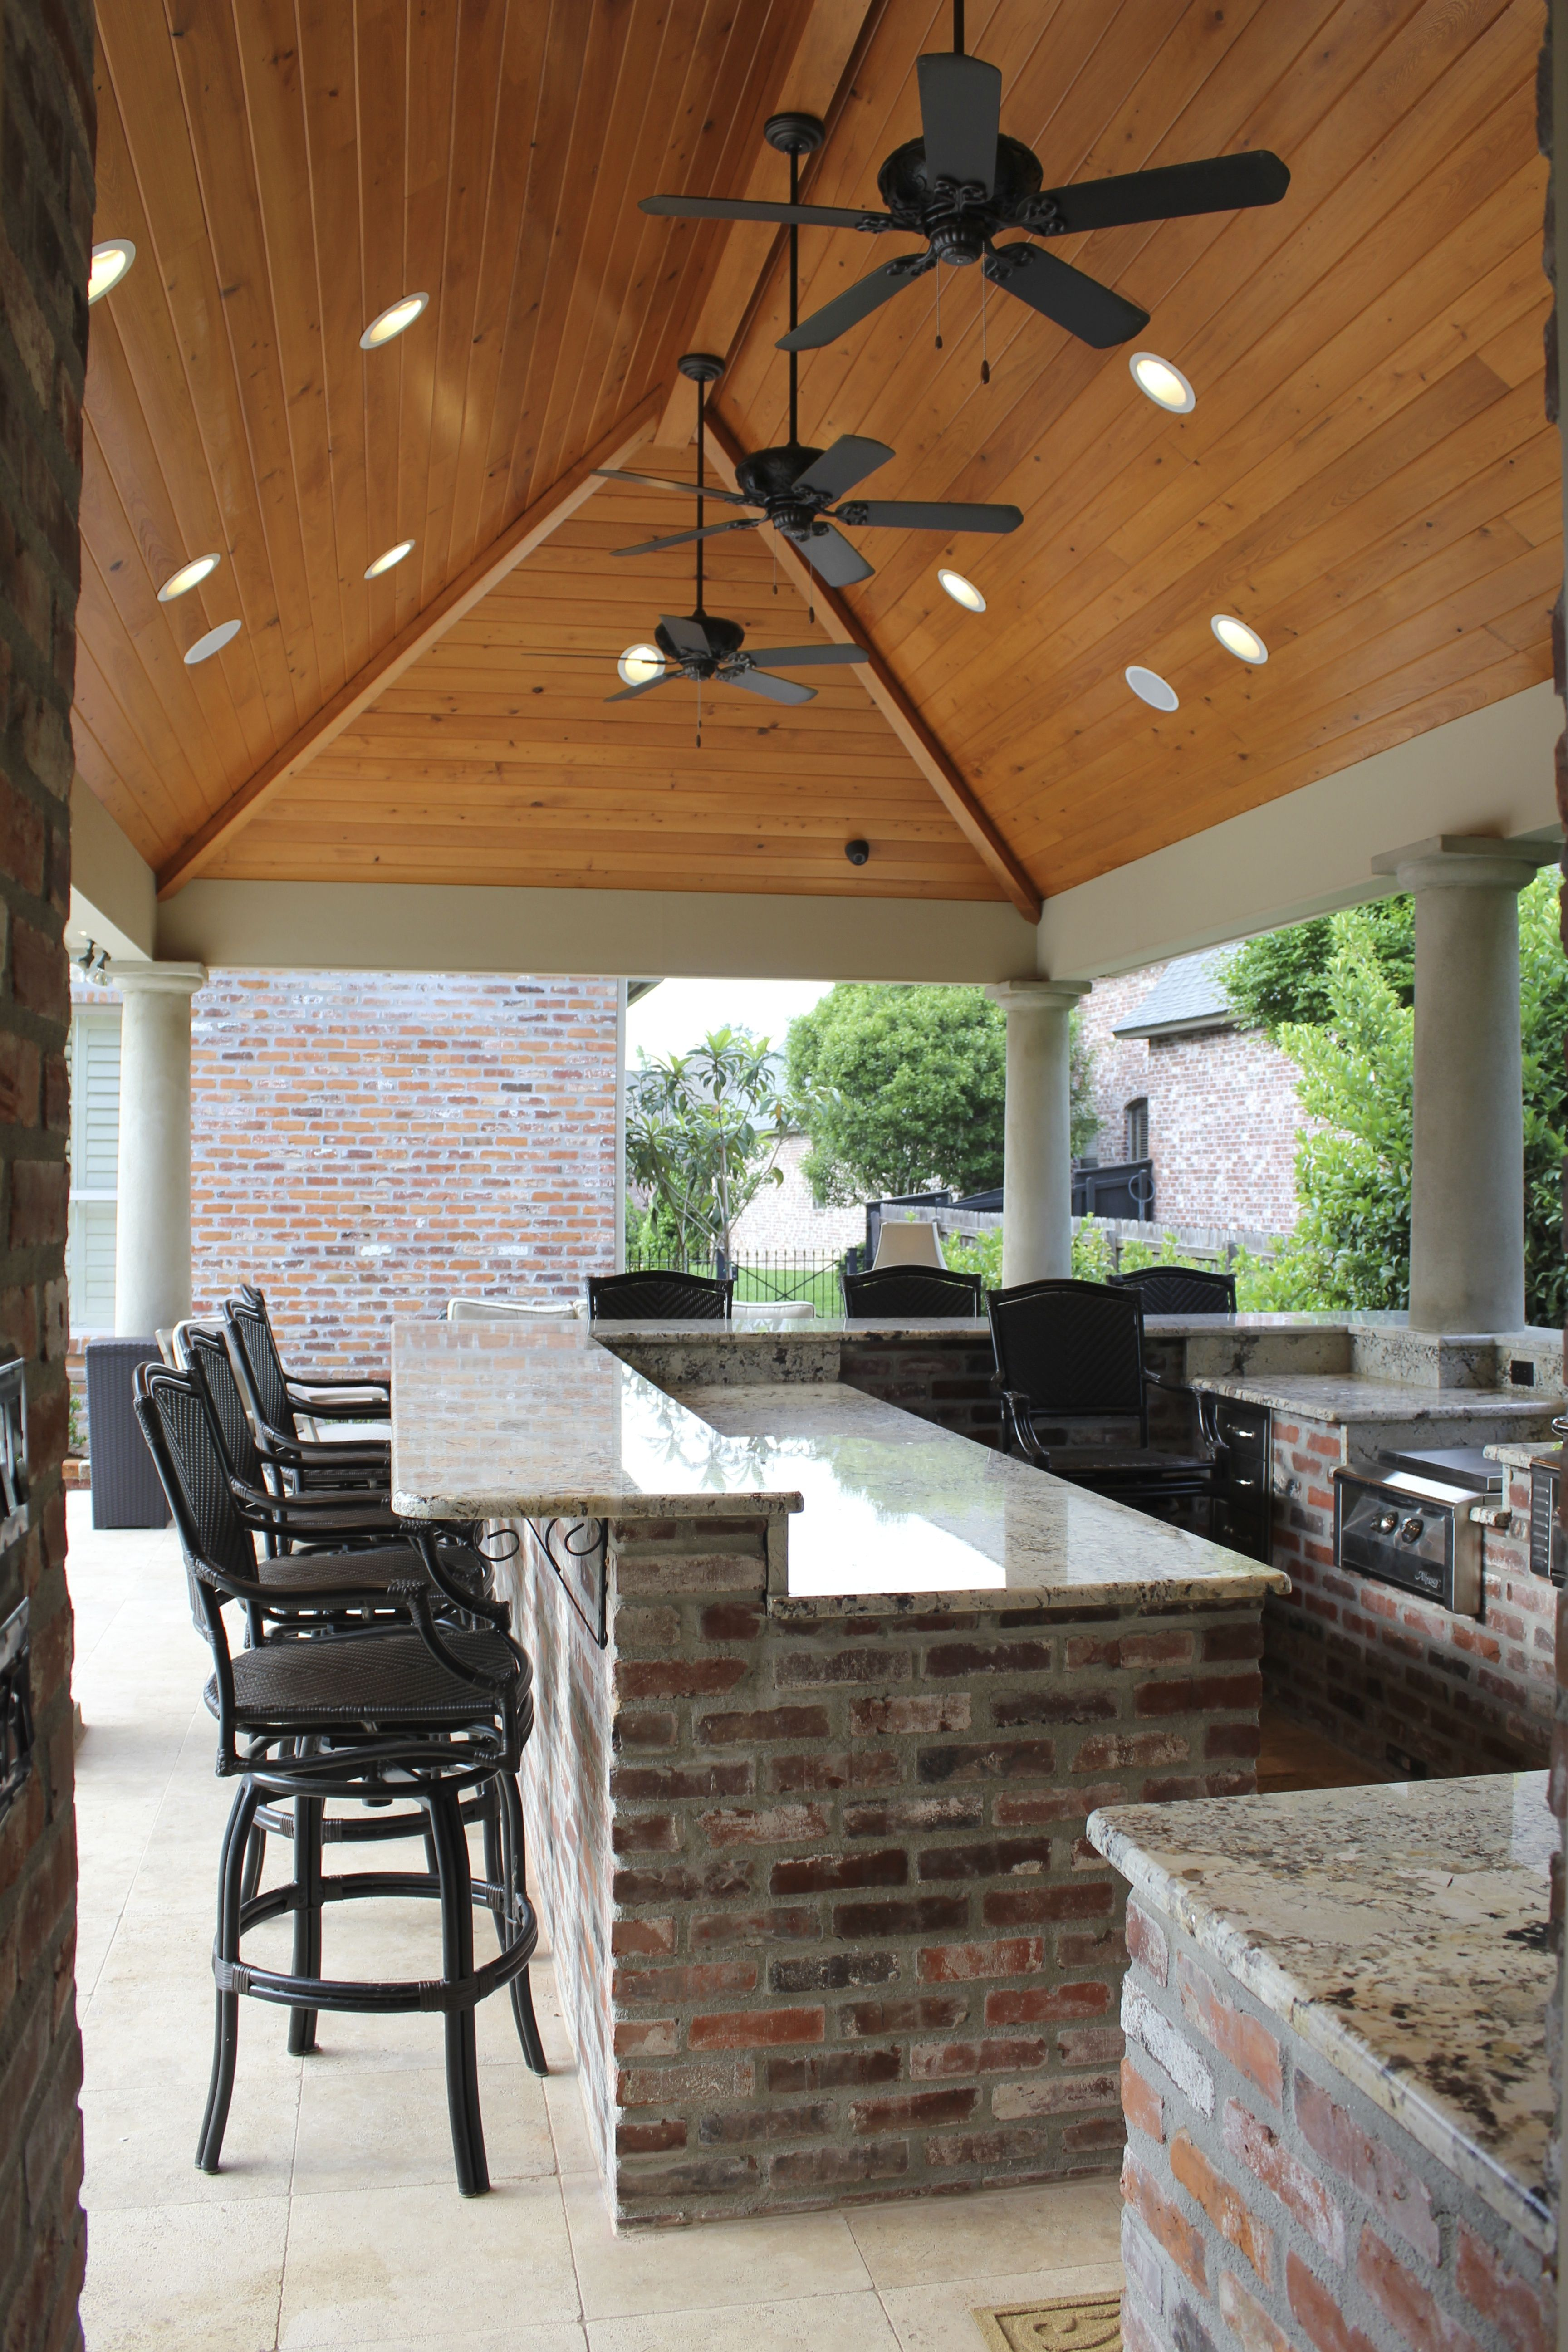 outdoor kitchen outdoor kitchen outdoor kitchen design backyard kitchen on outdoor kitchen and living space id=70421